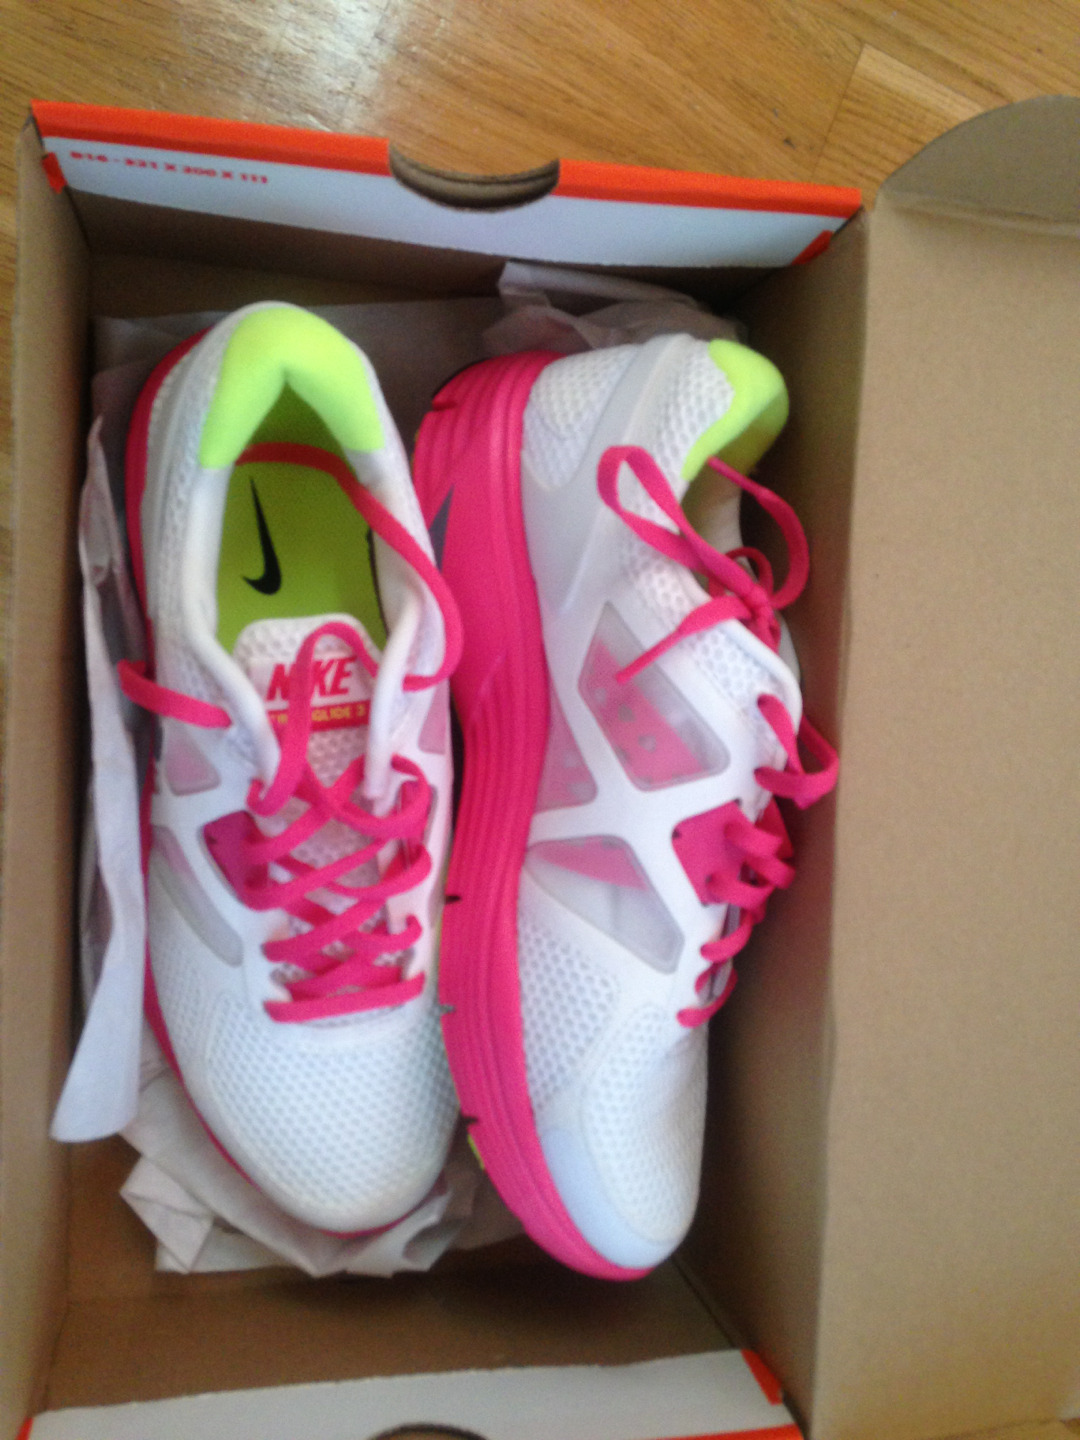 fitsportgirl:  My new pair of nike shoes!!!! I'm soooo excited about them, i absolutely love them